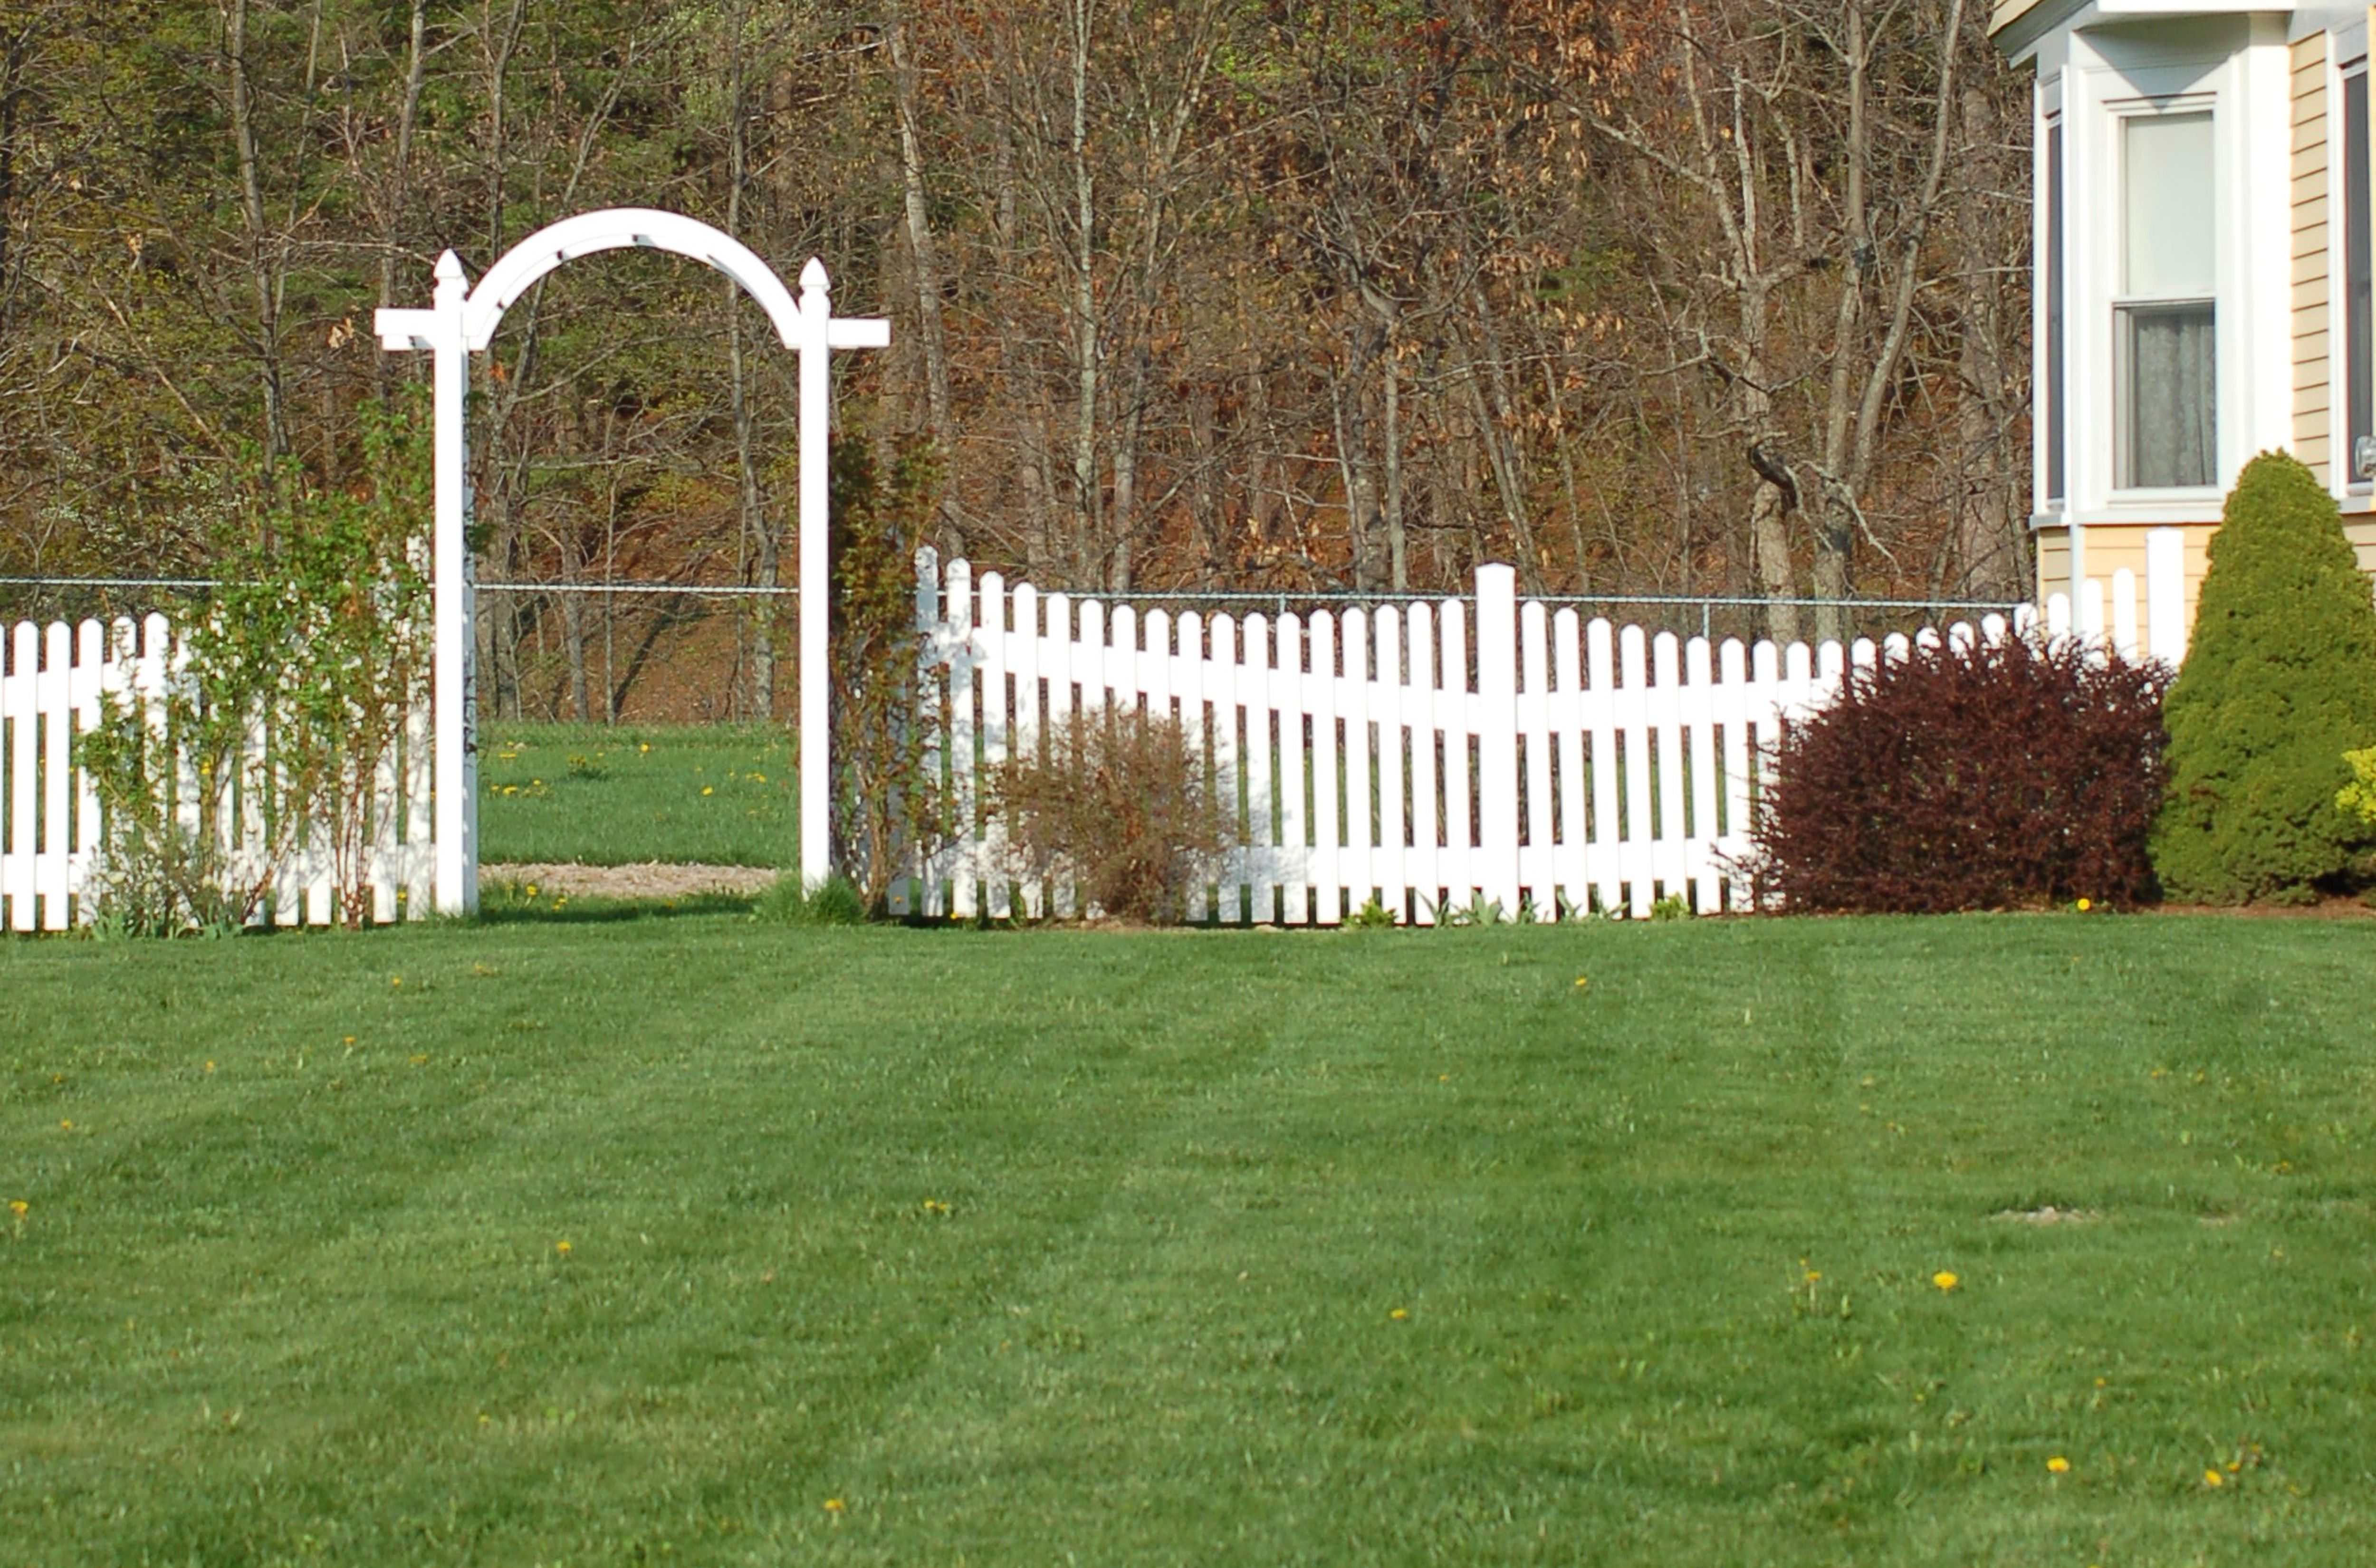 This arbor provides a transition in a vast side yard, defining for the viewer where the front yard ends and the back begins.